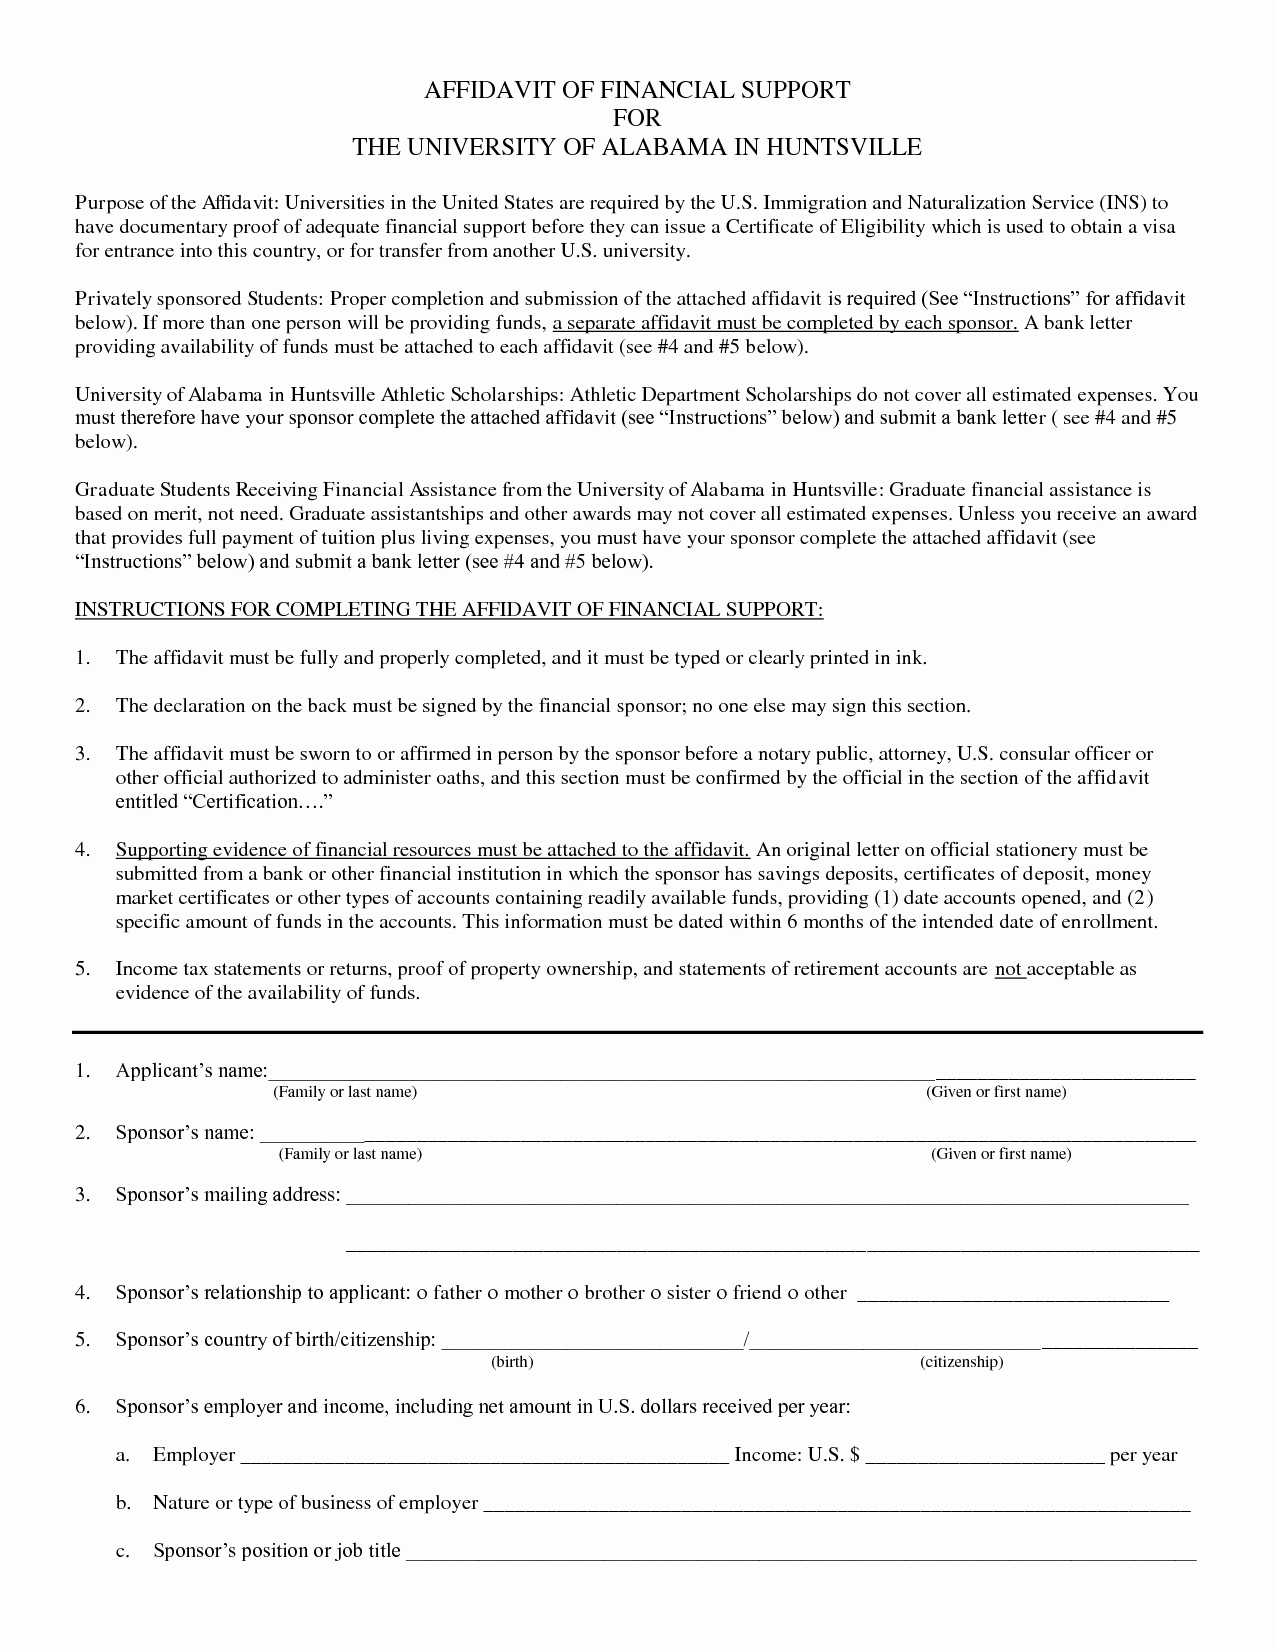 Marriage Letter for Immigration Sample Fresh Writing An Affidavit Letter for Immigration